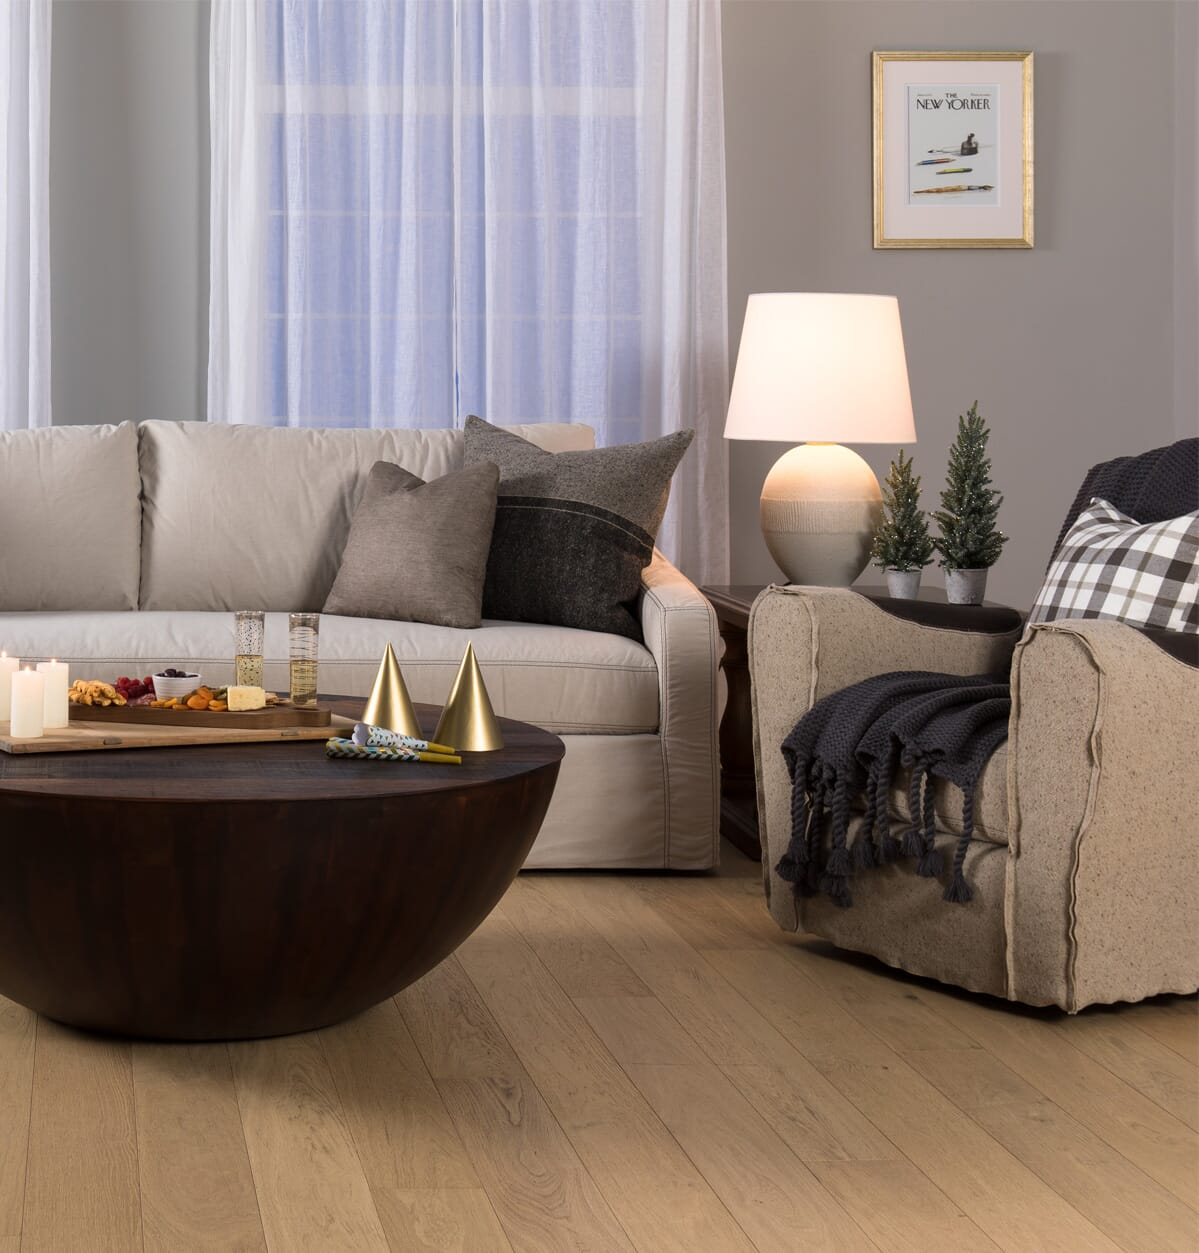 Quality Home Furnishings Wisconsin August Haven Furniture